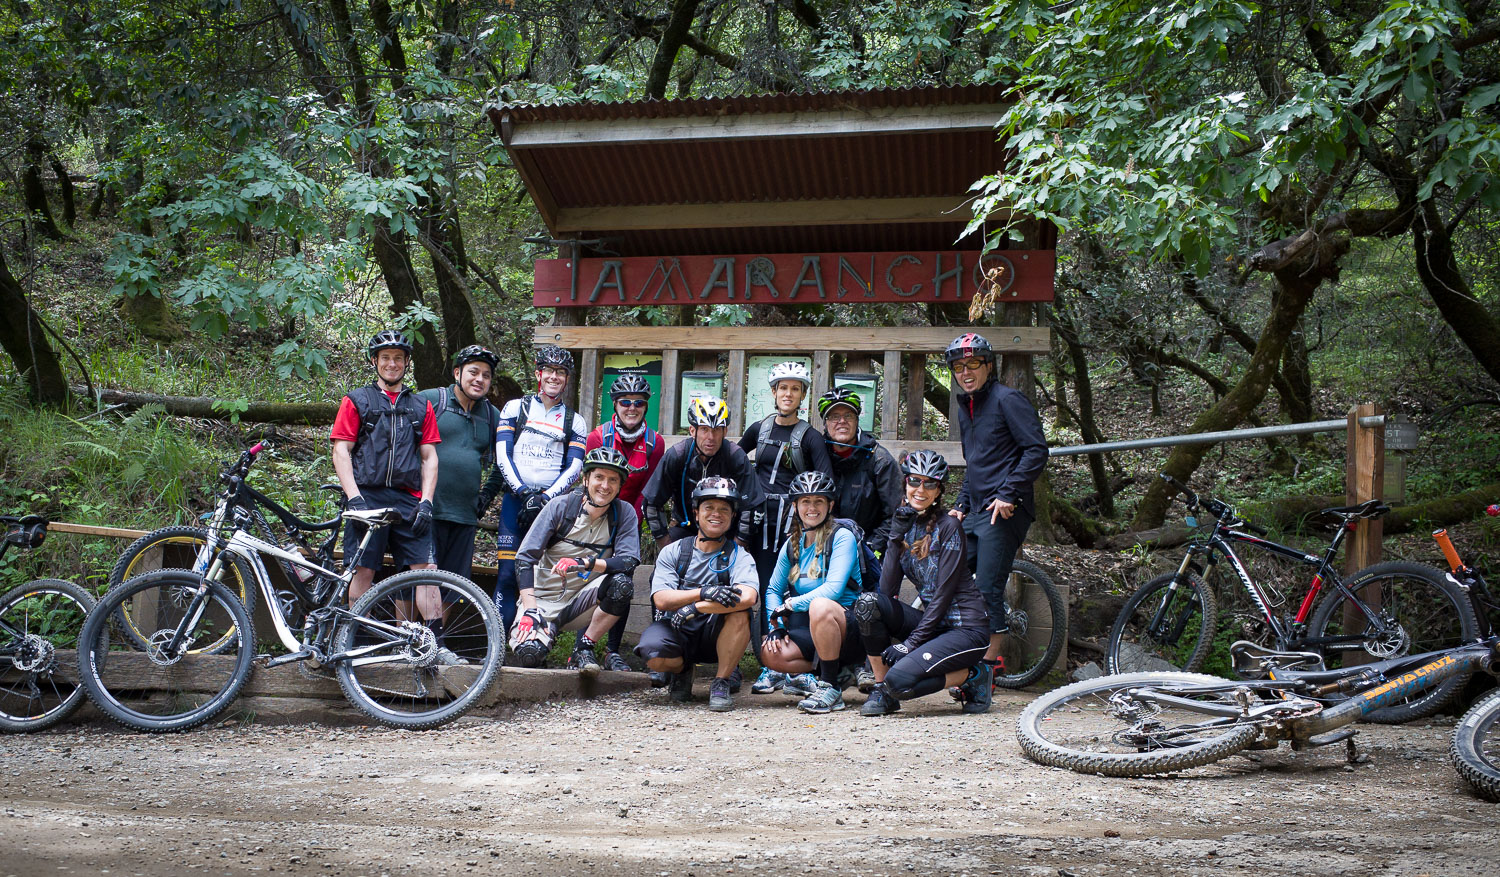 A Bikeskills Clinic at Tamarancho